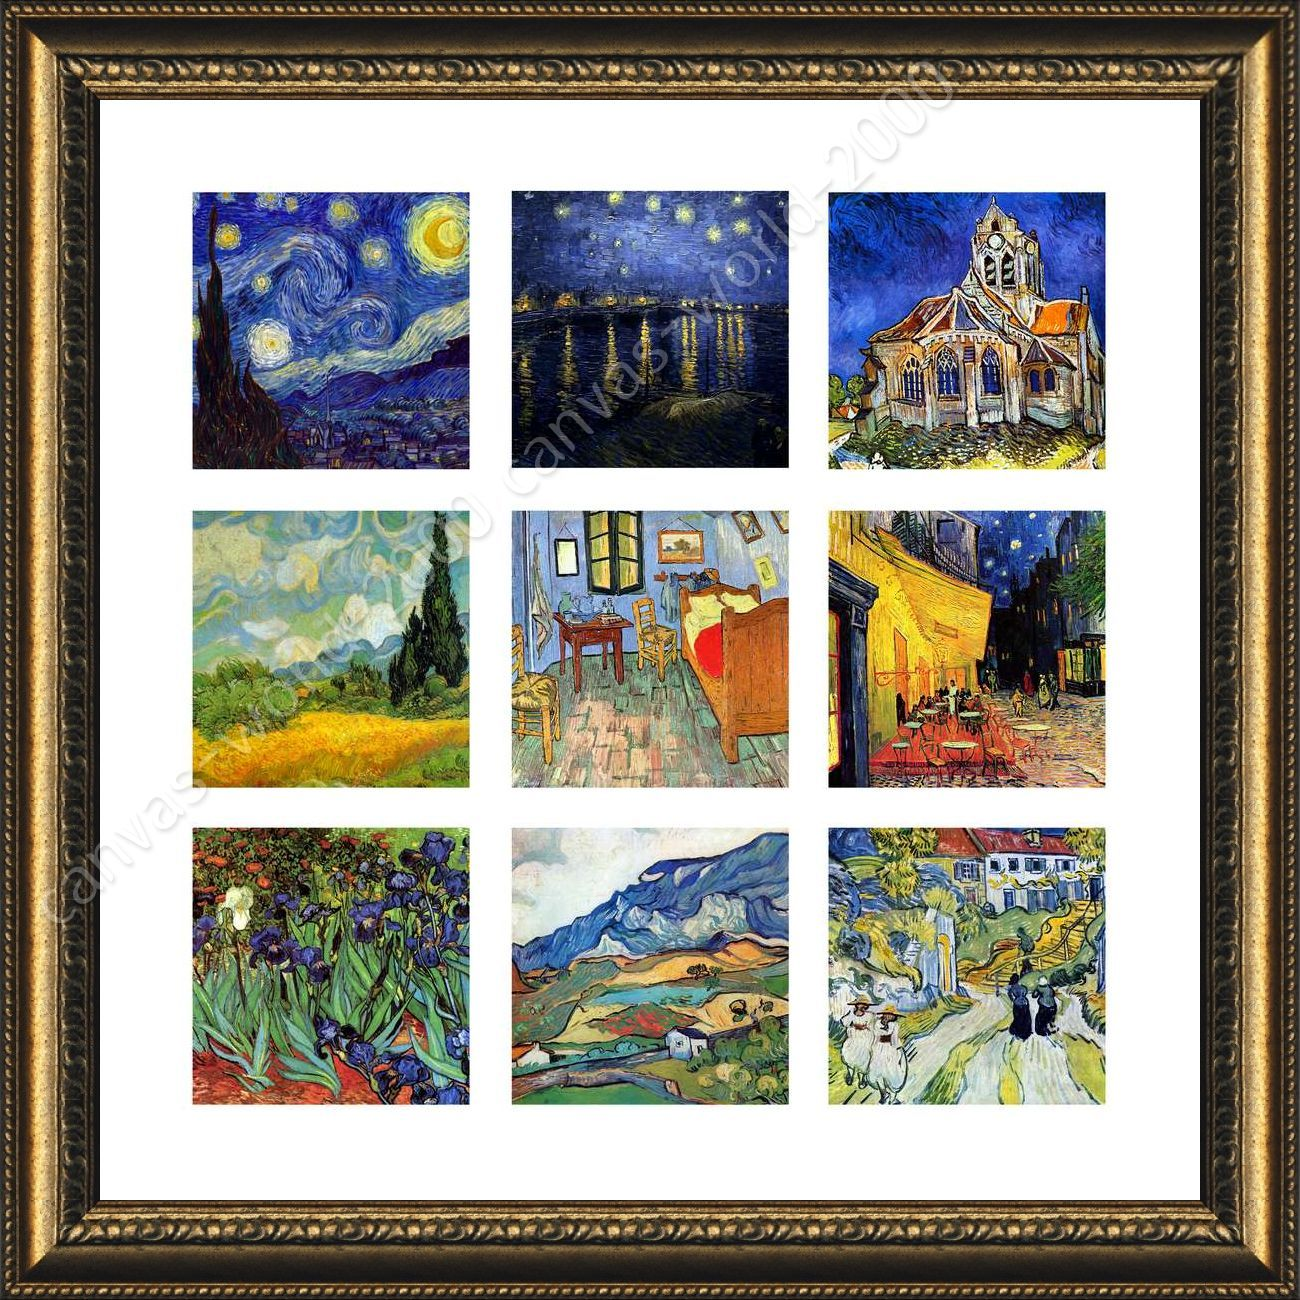 511ad0360da Collage  4 Starry Night Cafe by Vincent Van Gogh